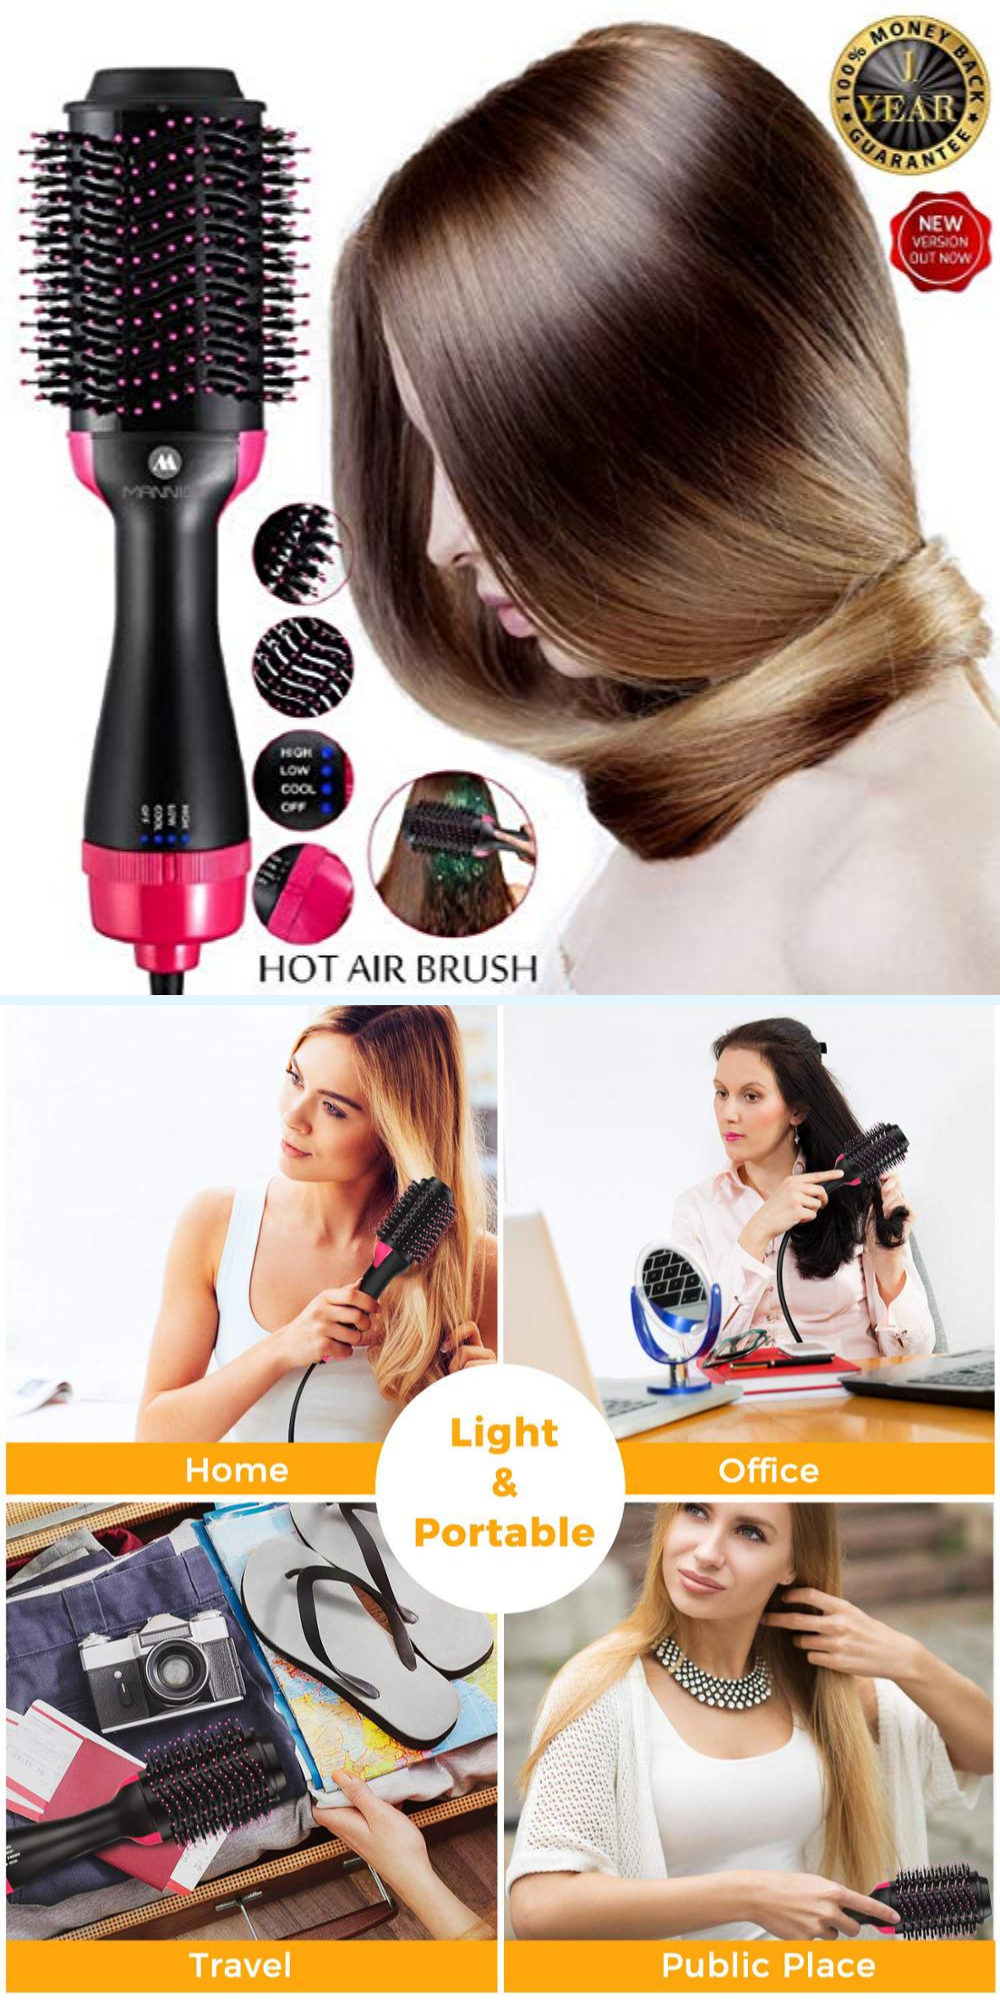 Photo of DIY Dry and Style Your Hair anywhere | 2 in 1 Hair Dryer and Volumiser Styling Tool